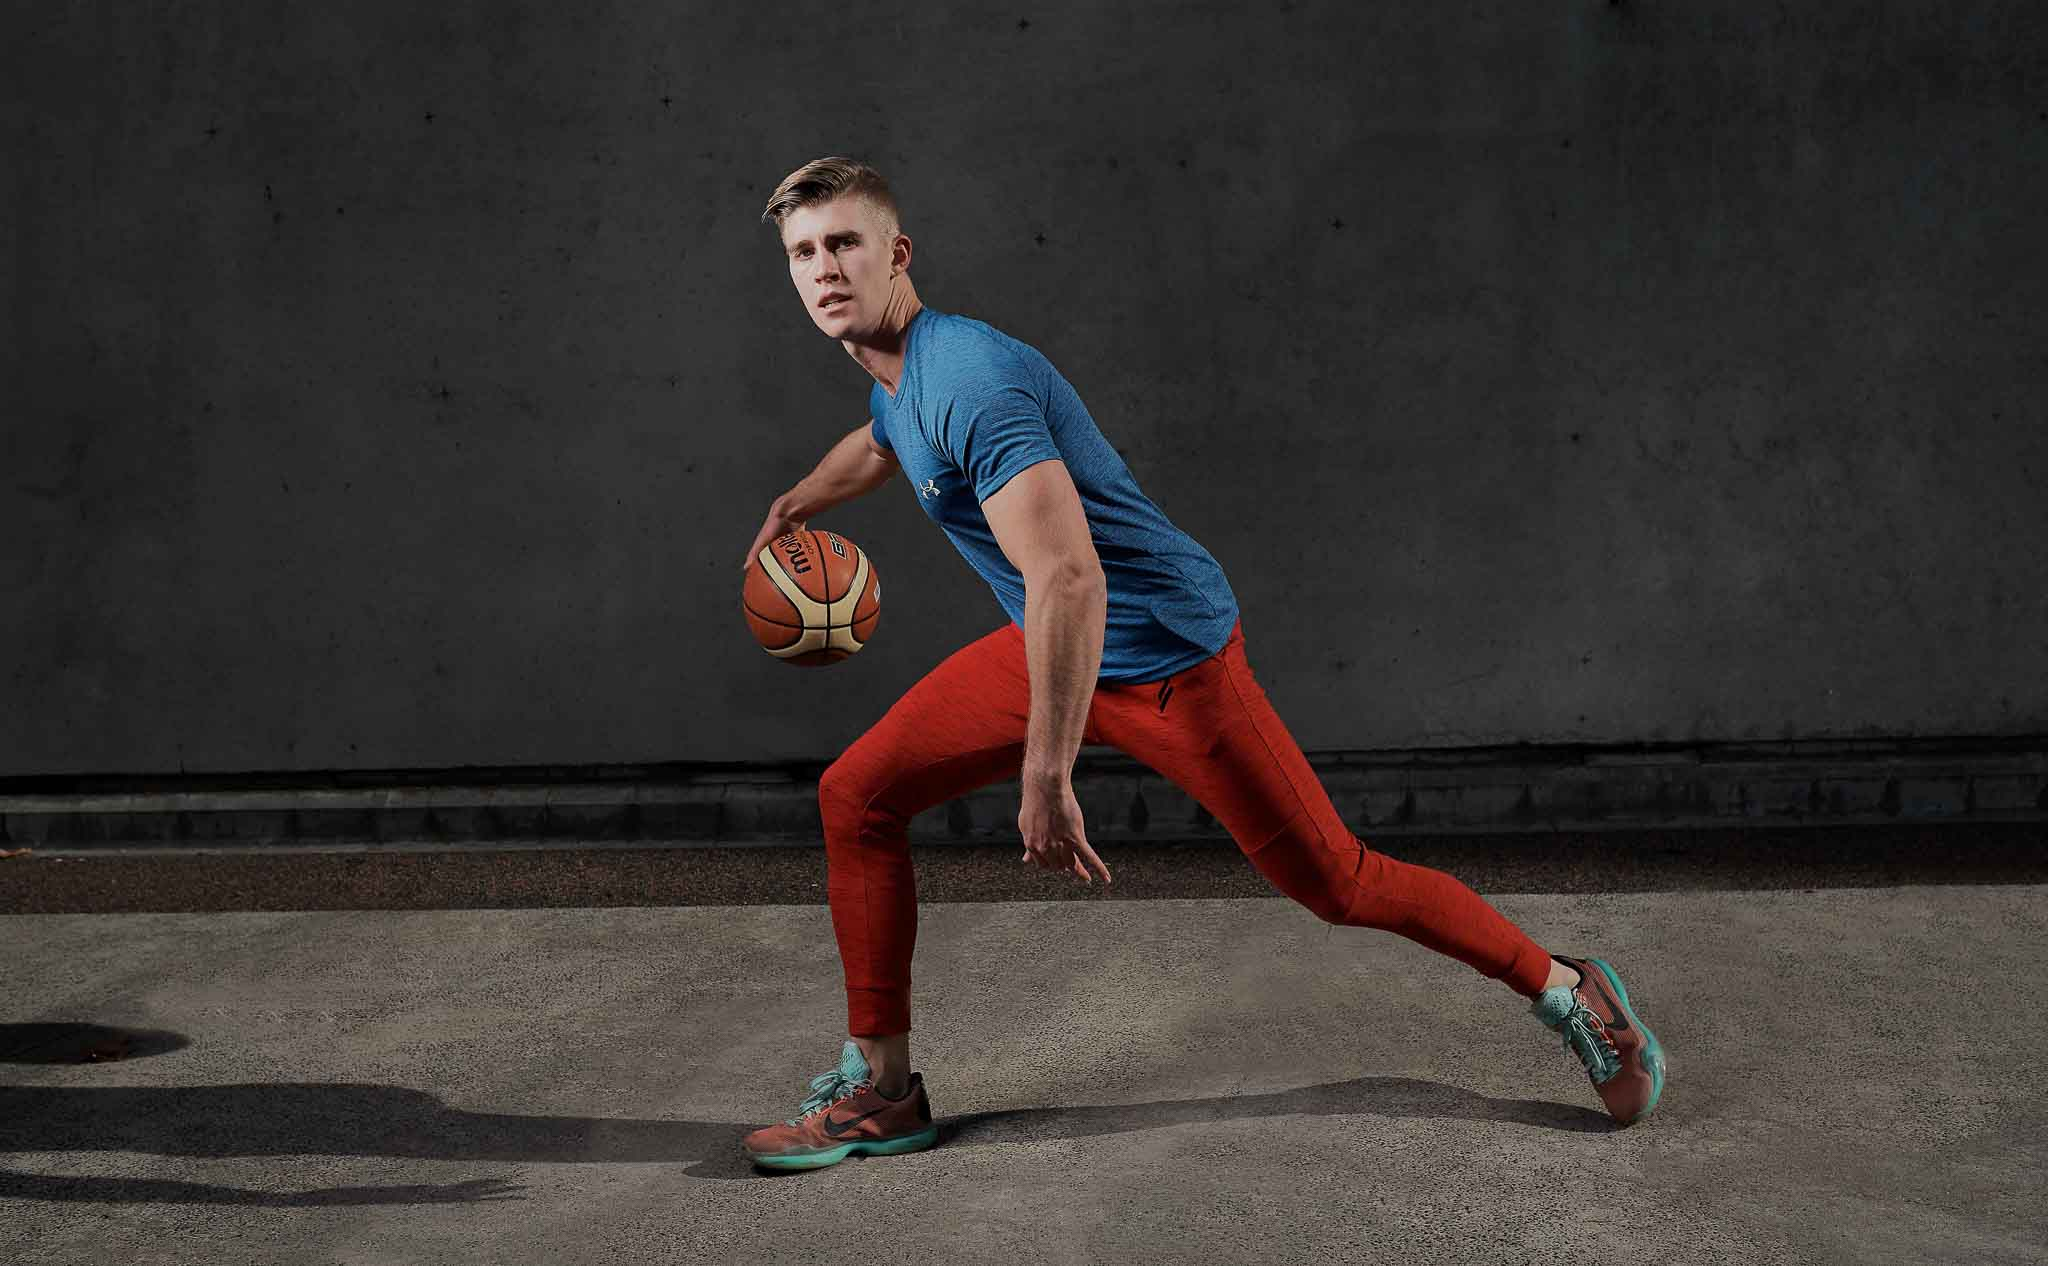 Callum dribbling a basketball wearing red jog pants and a blue loose top in front of a concrete wall